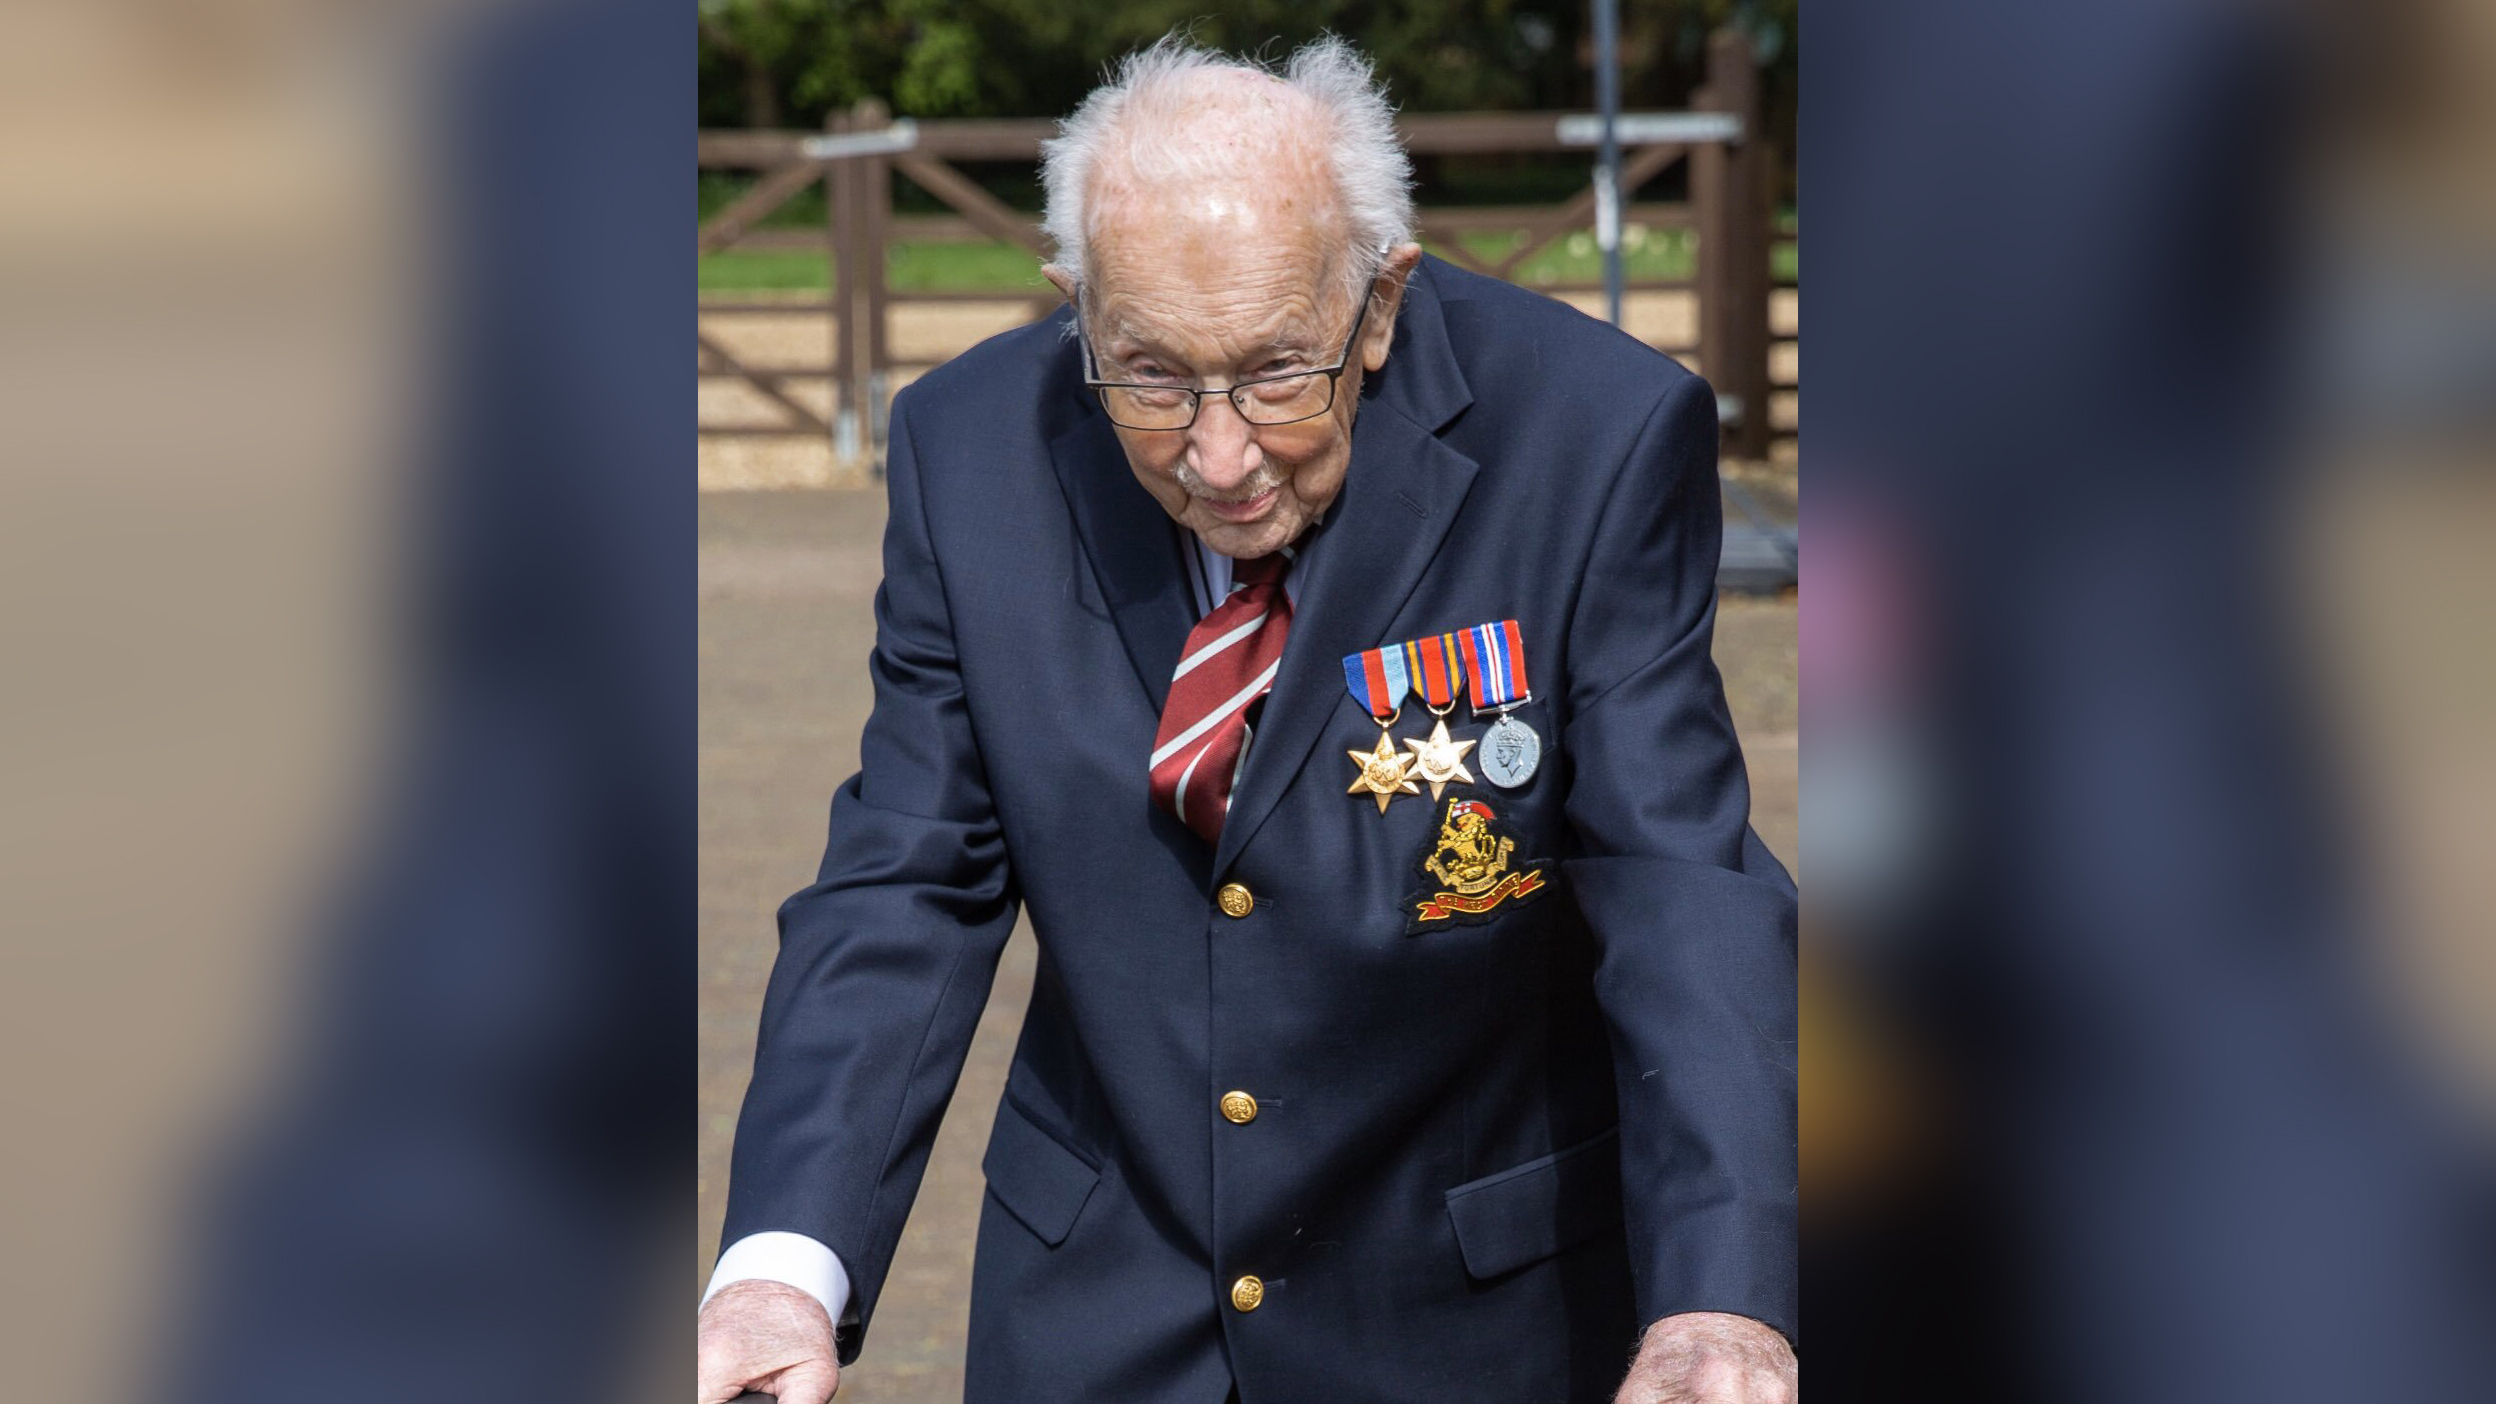 A 99-year-old British war veteran has raised more than £4.8 million ($6 million) for the country's National Health Service (NHS) as he aims to complete 100 laps of his garden, aided by a walking frame.